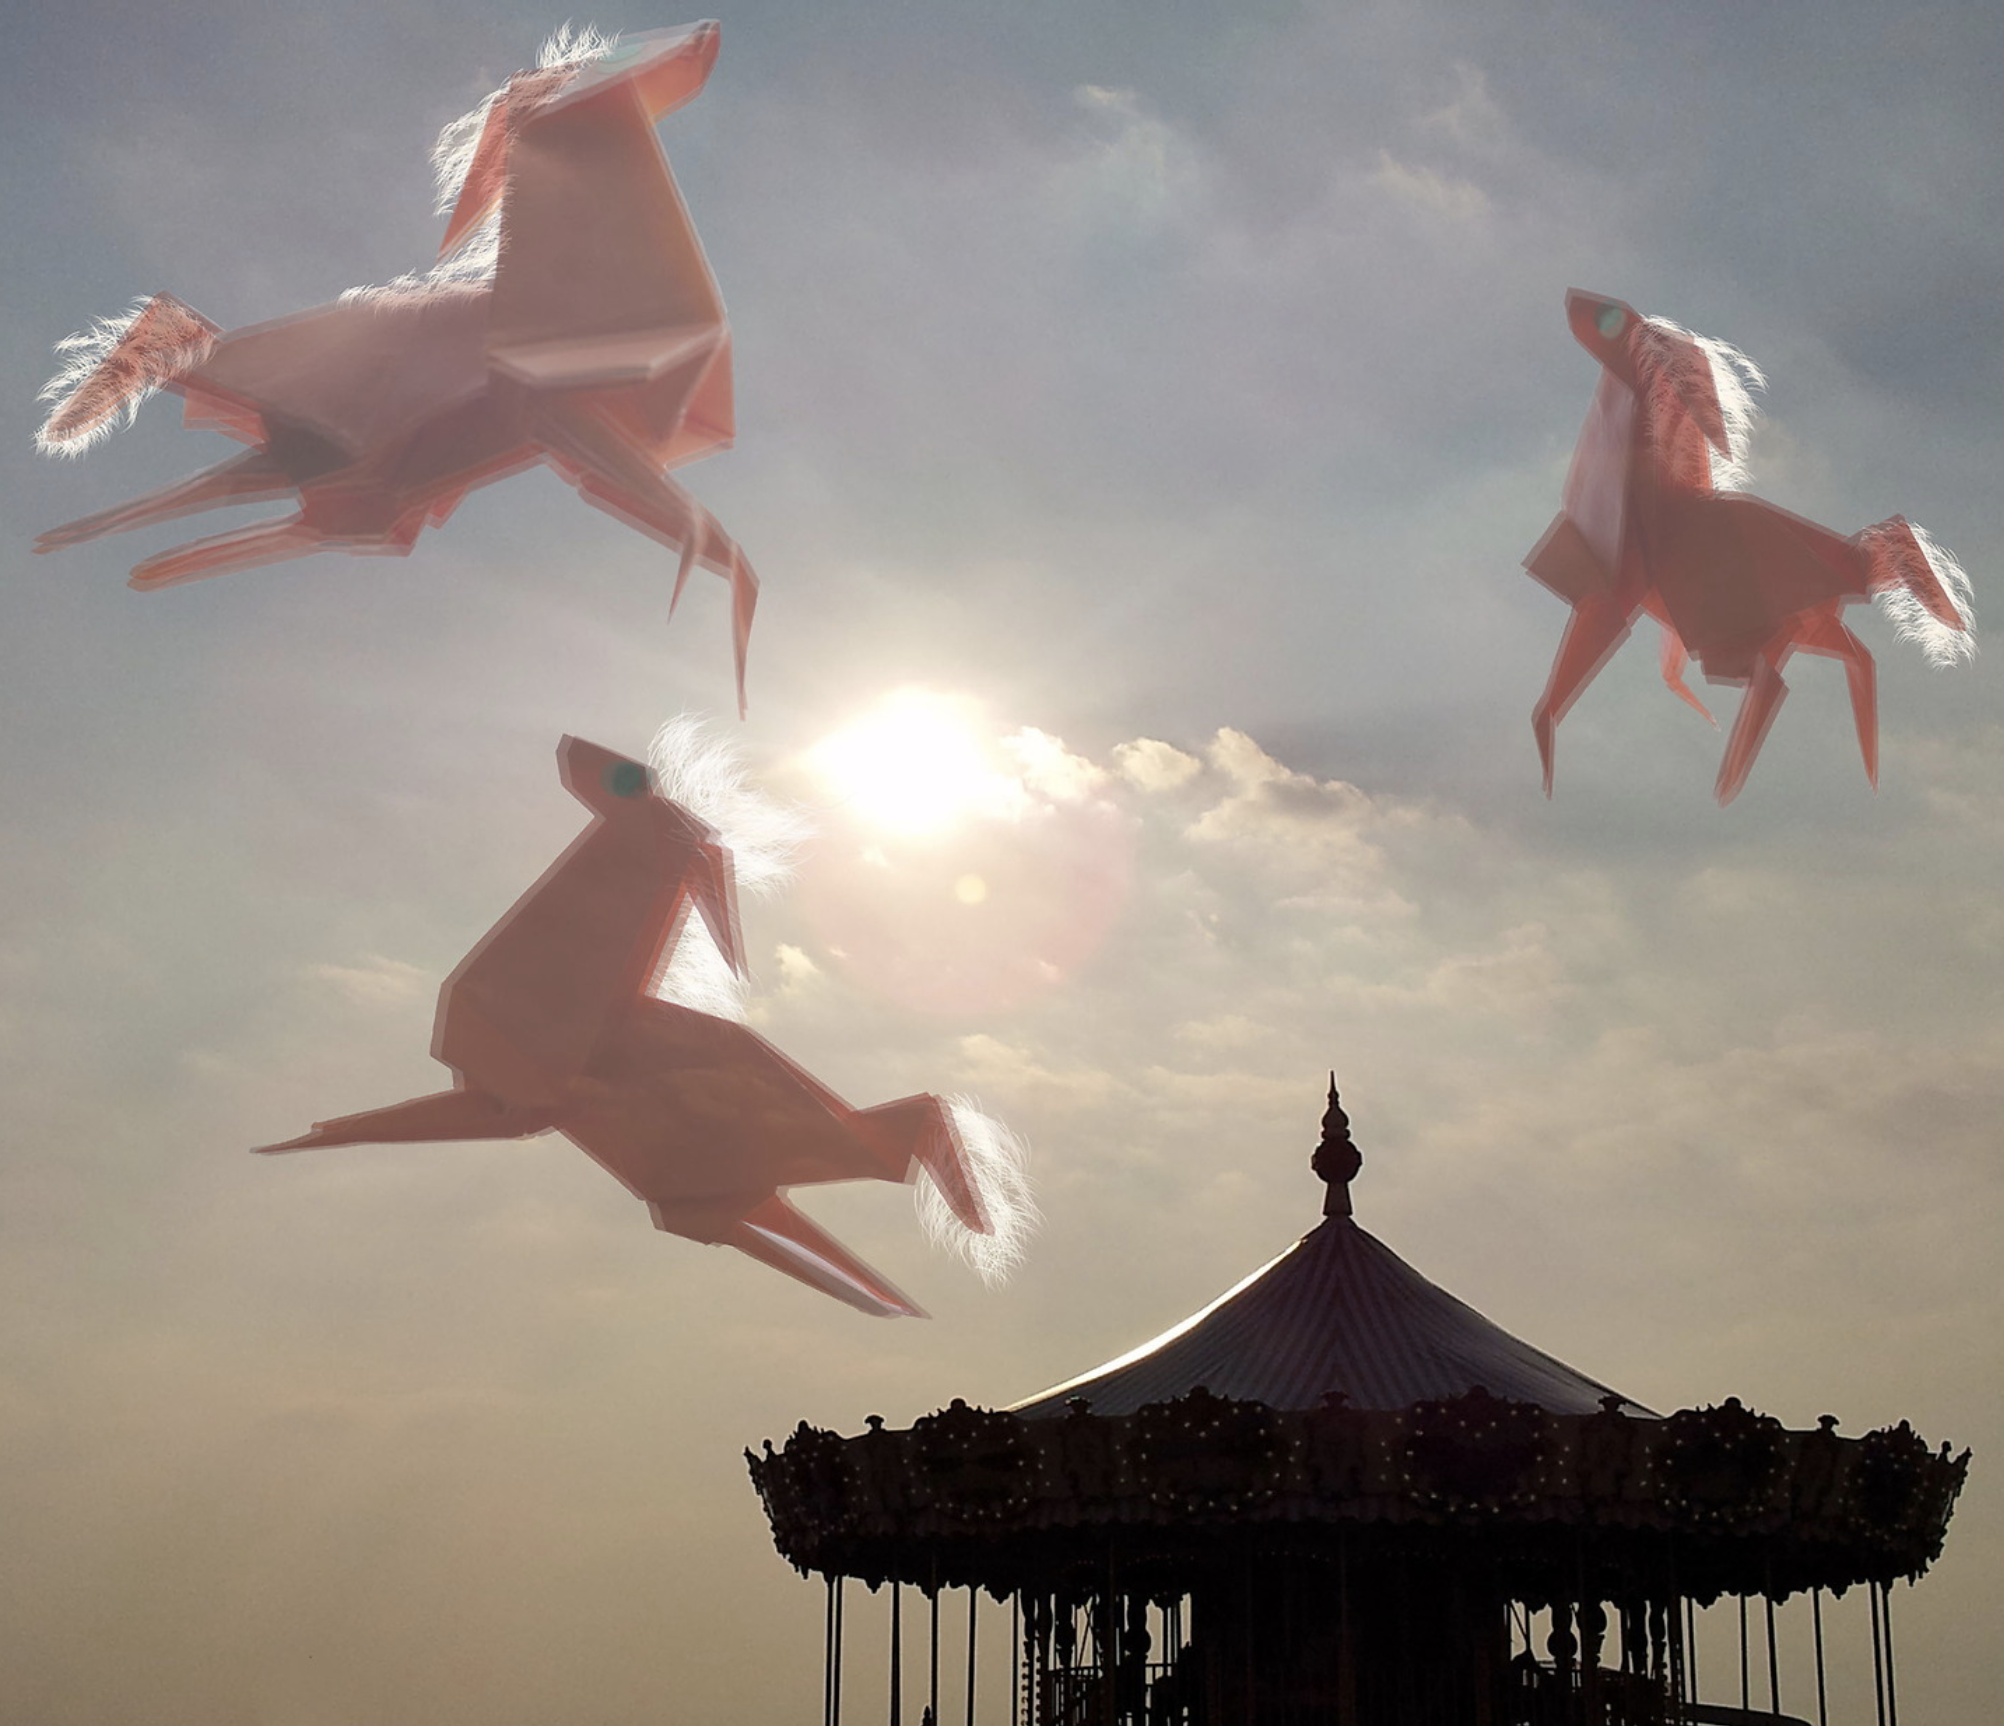 Origami horses flying above a carousel